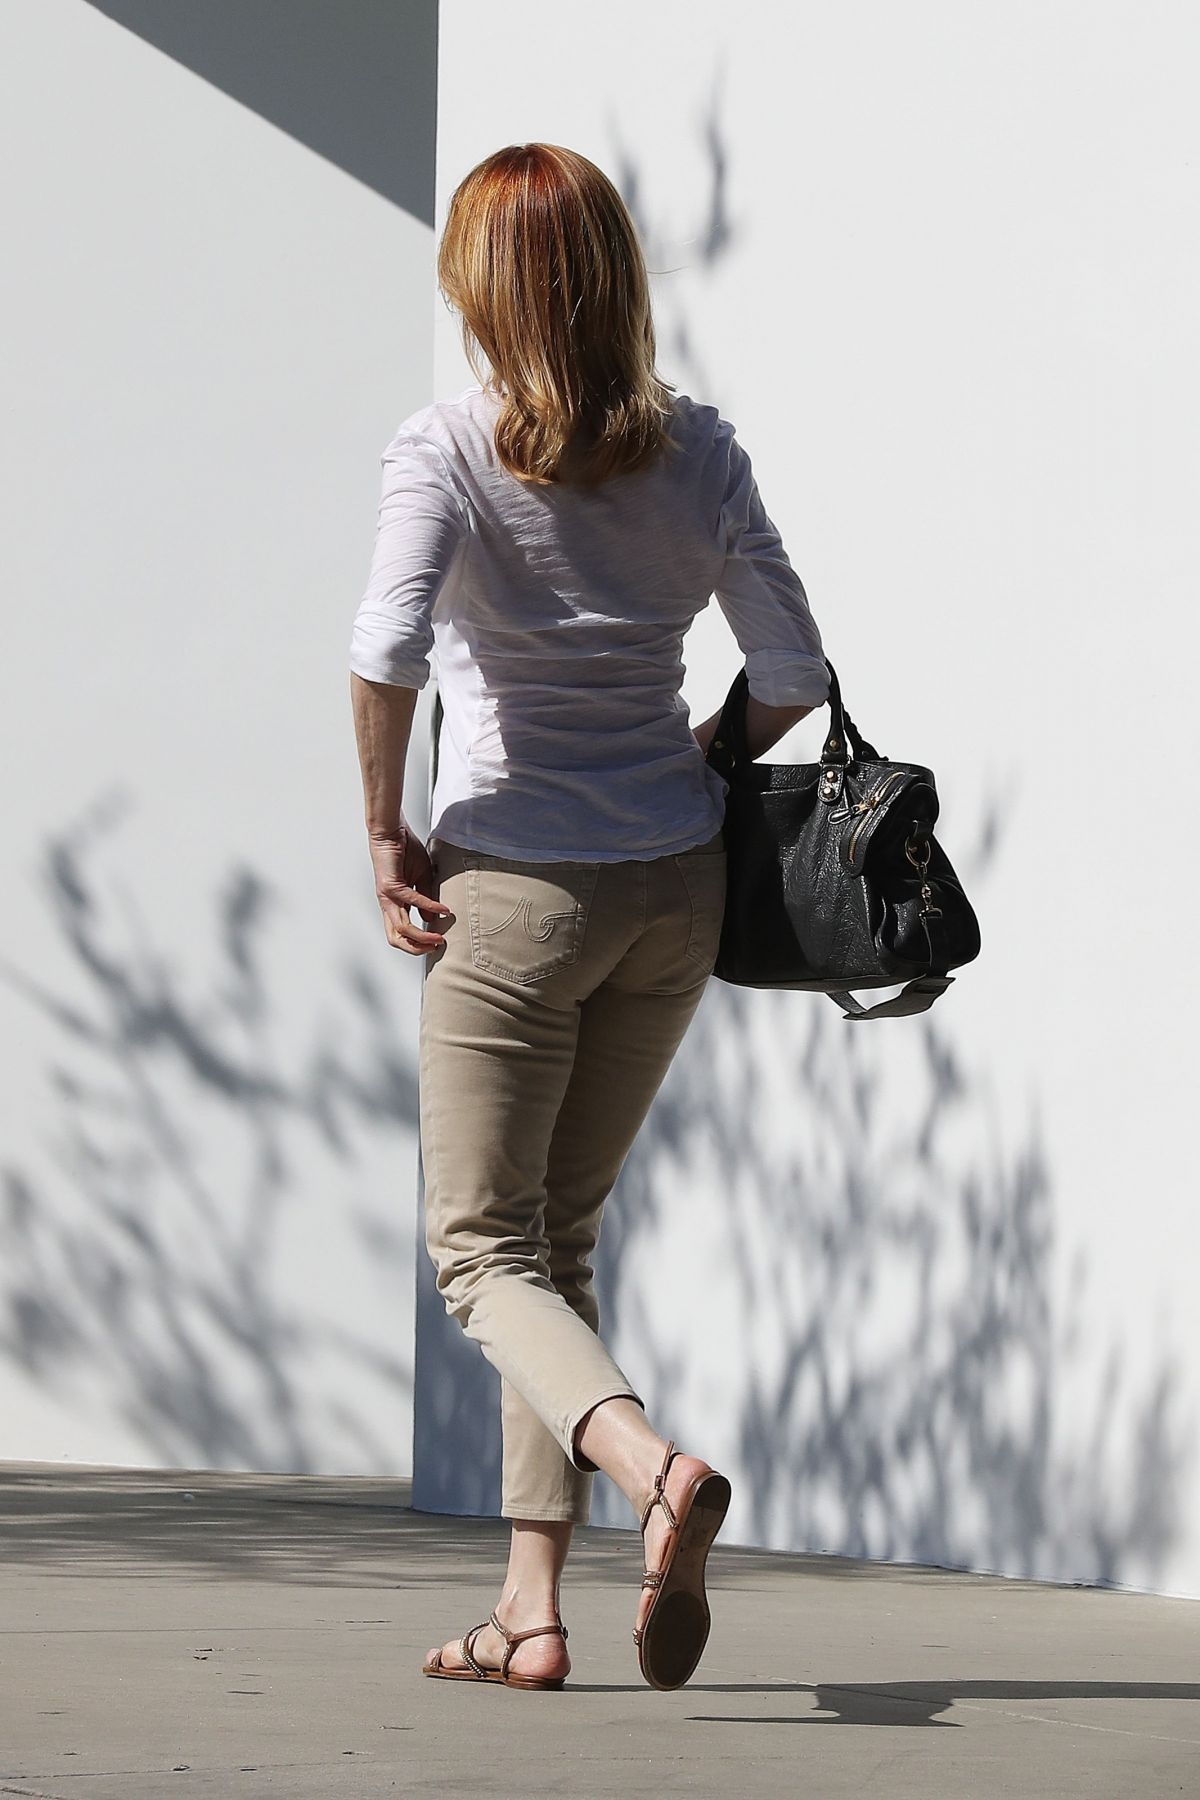 Marg helgenberger casual style shopping at splendid in santa monica nude (95 pictures)